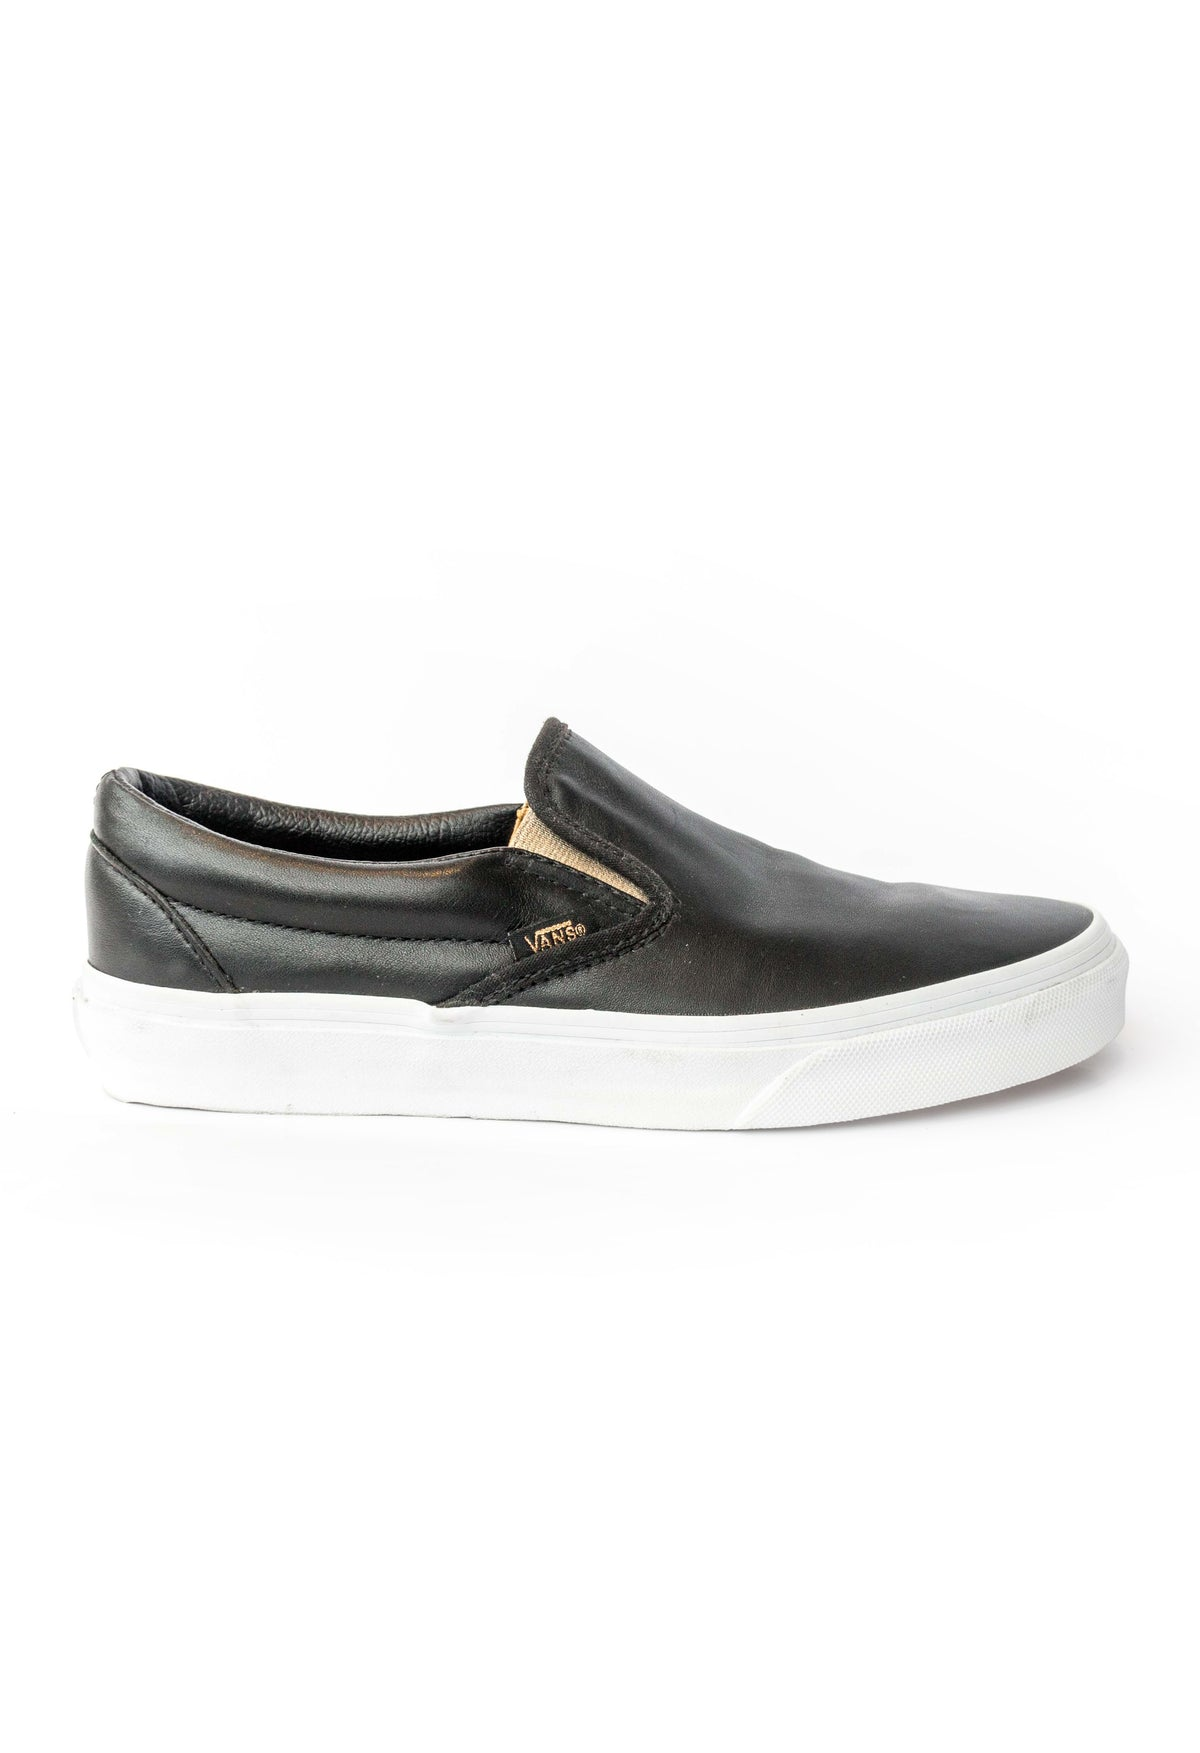 Classic Slip On Leather Black and Gold Vans Stockists New Zealand Buy Online Vans Skate Shoes Street Lace up Sneakers